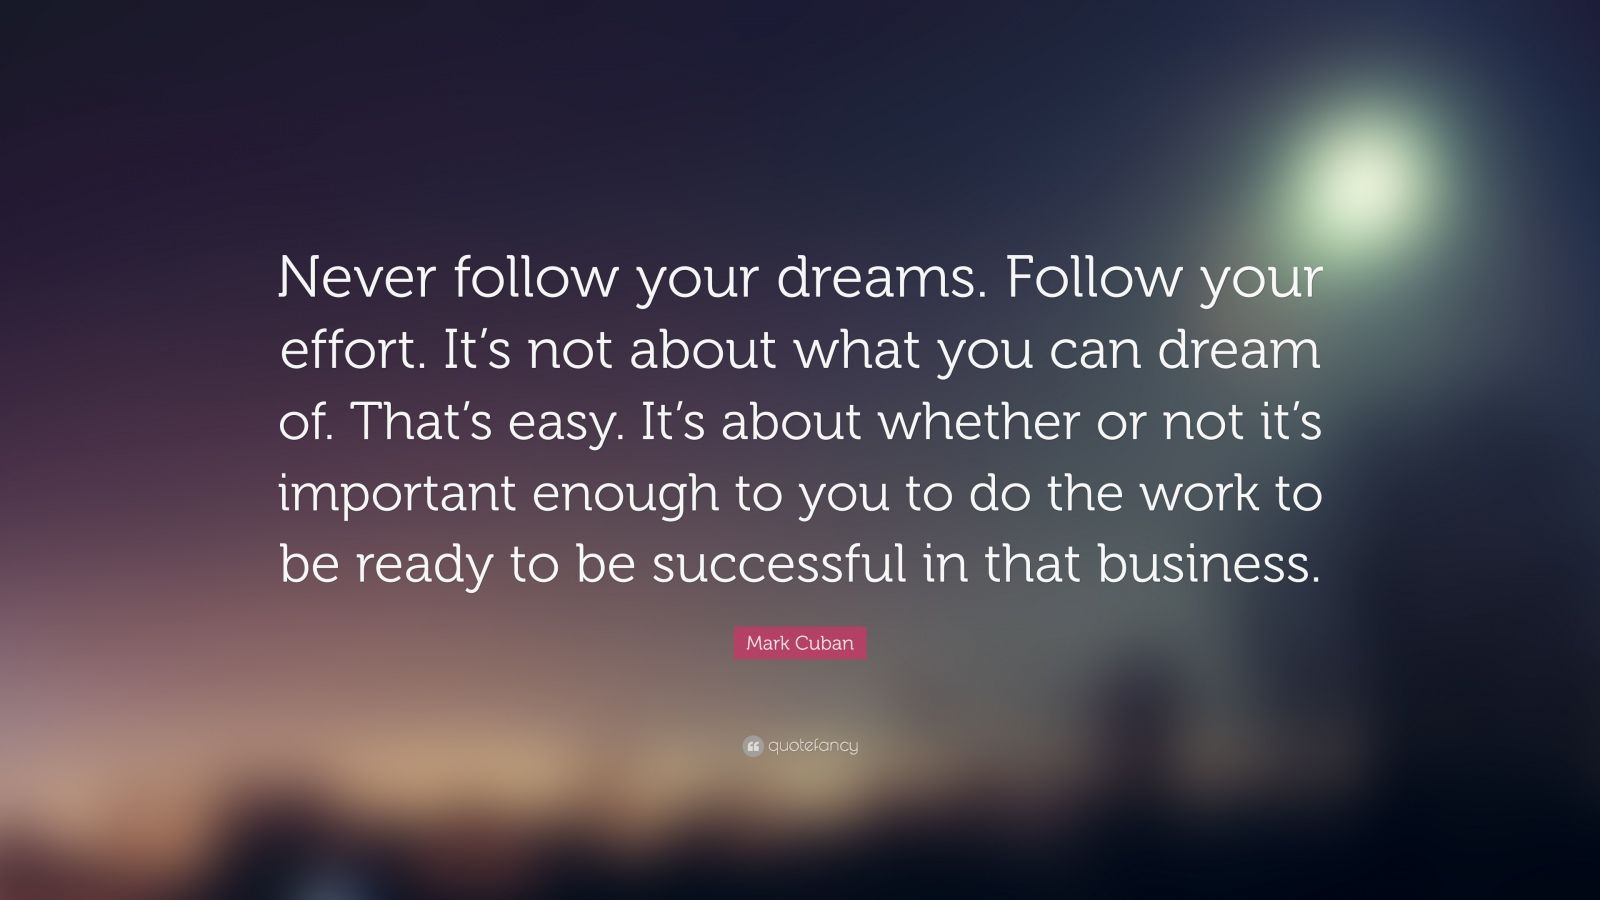 """Mark Cuban Quote: """"Never follow your dreams. Follow your effort. It's not about what you can dream of. That's easy. It's about whether or not it's important enough to you to do the work to be ready to be successful in that business."""""""